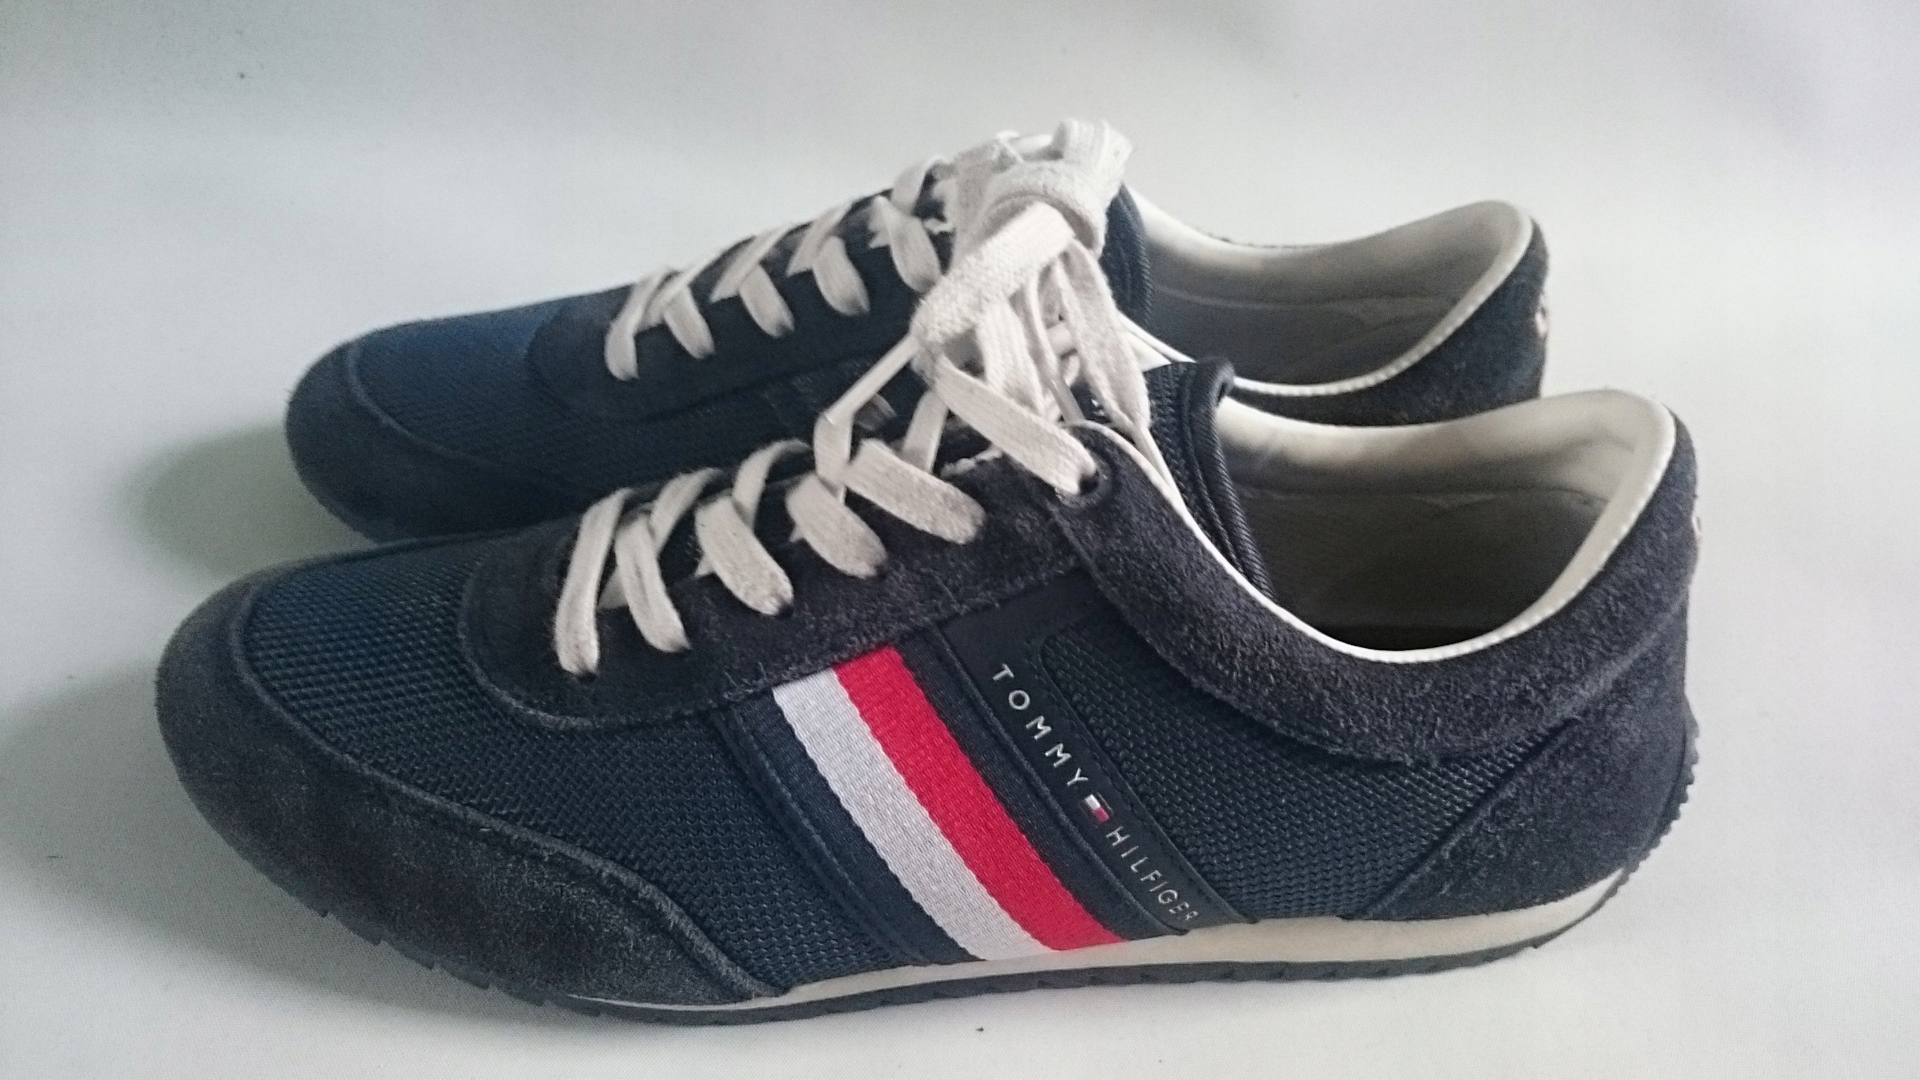 201bbd7f TOMMY HILFIGER CORPORATE MATERIAL MIX RUNNER 41 - 7636685231 ...